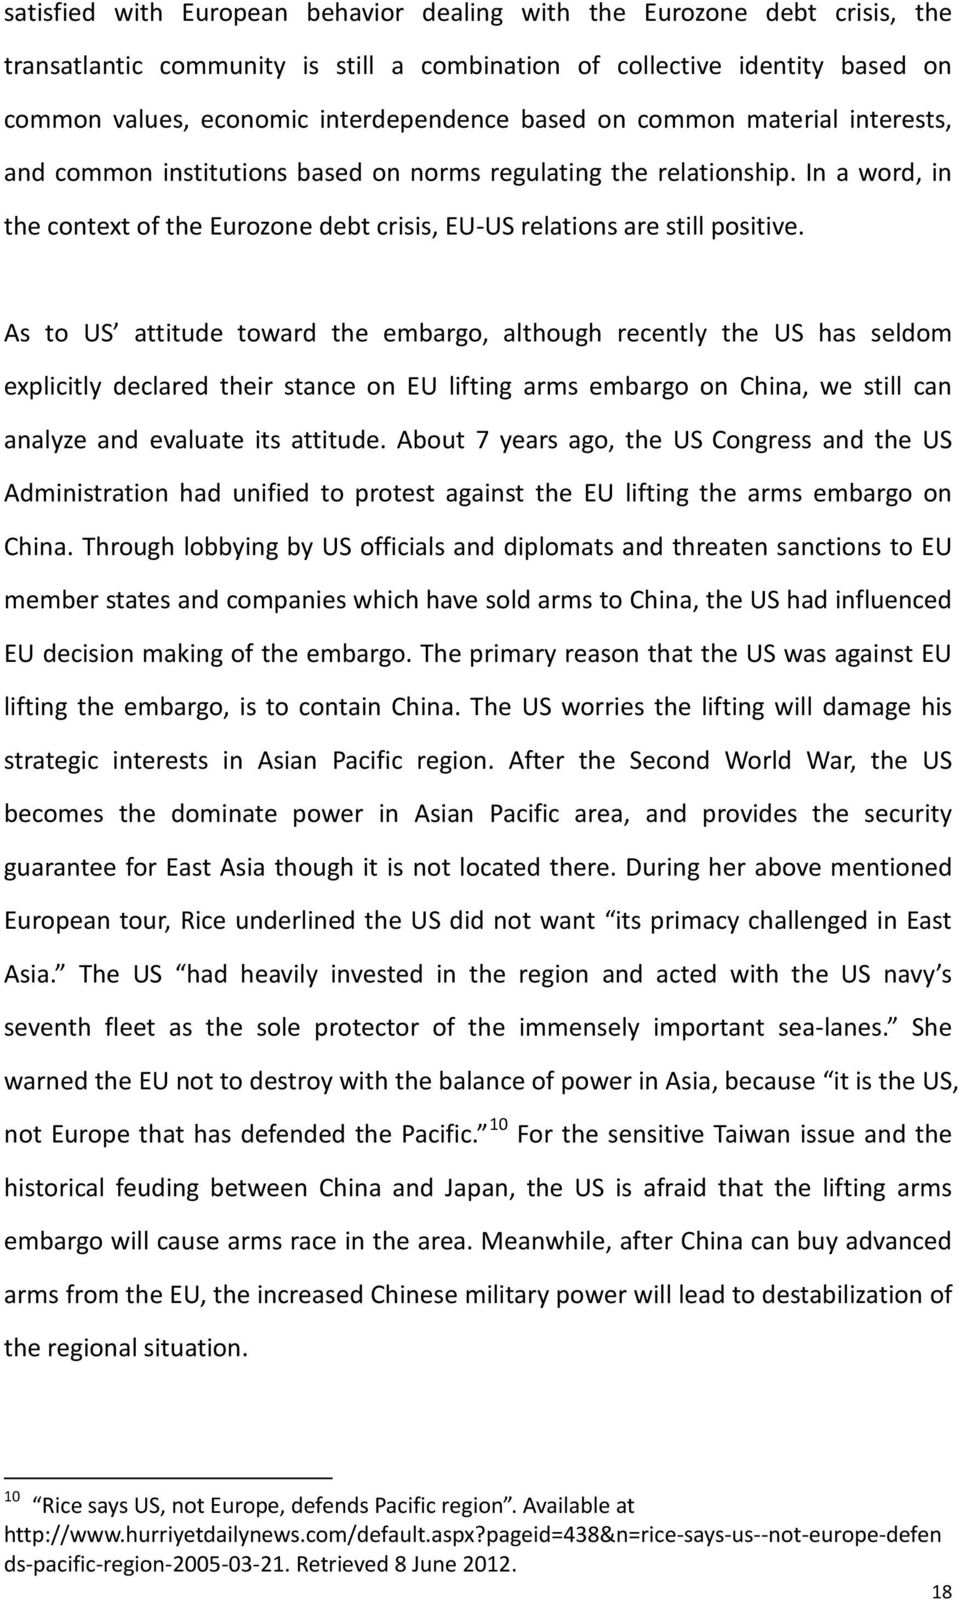 As to US attitude toward the embargo, although recently the US has seldom elicitly declared their stance on EU lifting arms embargo on China, we still can analyze and evaluate its attitude.